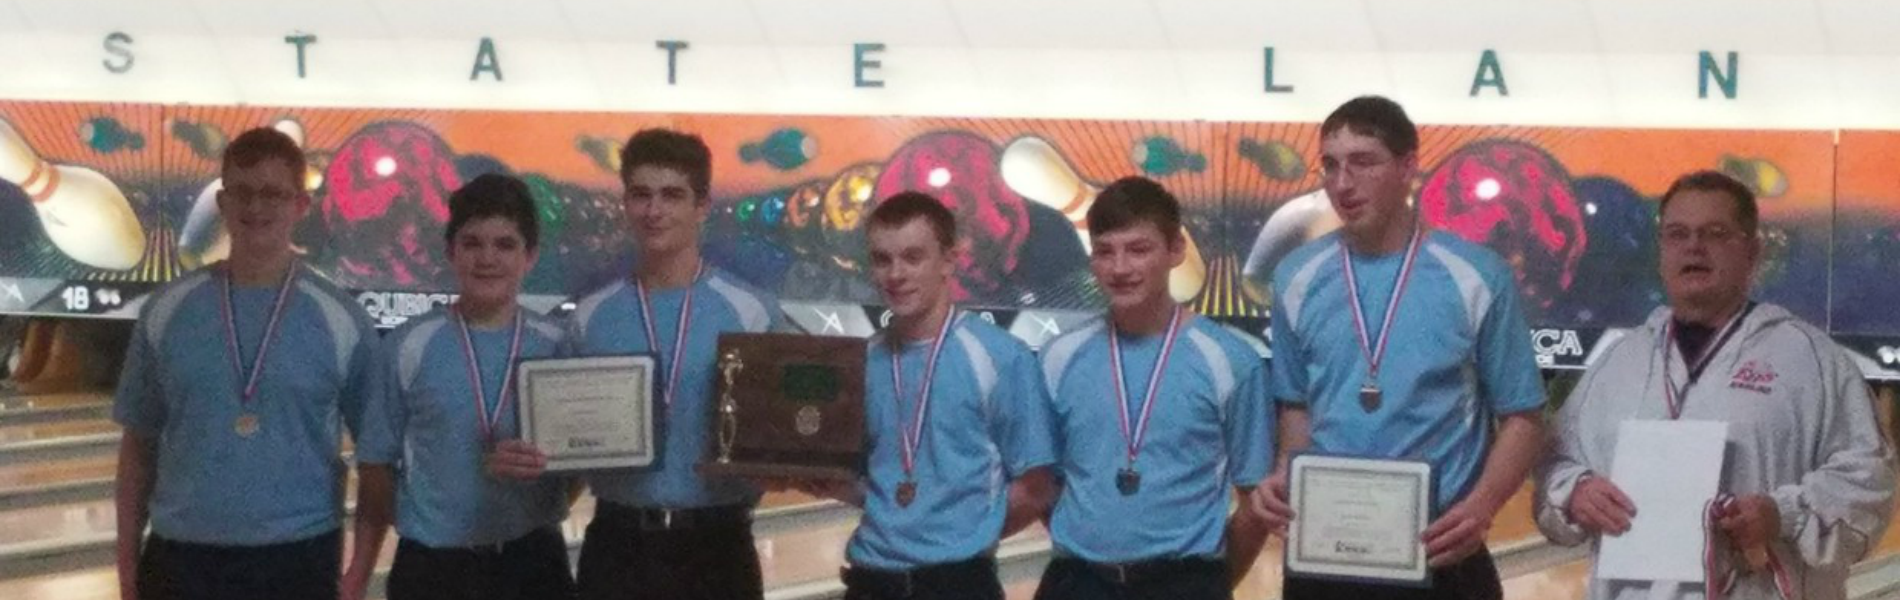 Eastwood Bowling Team - District Champions